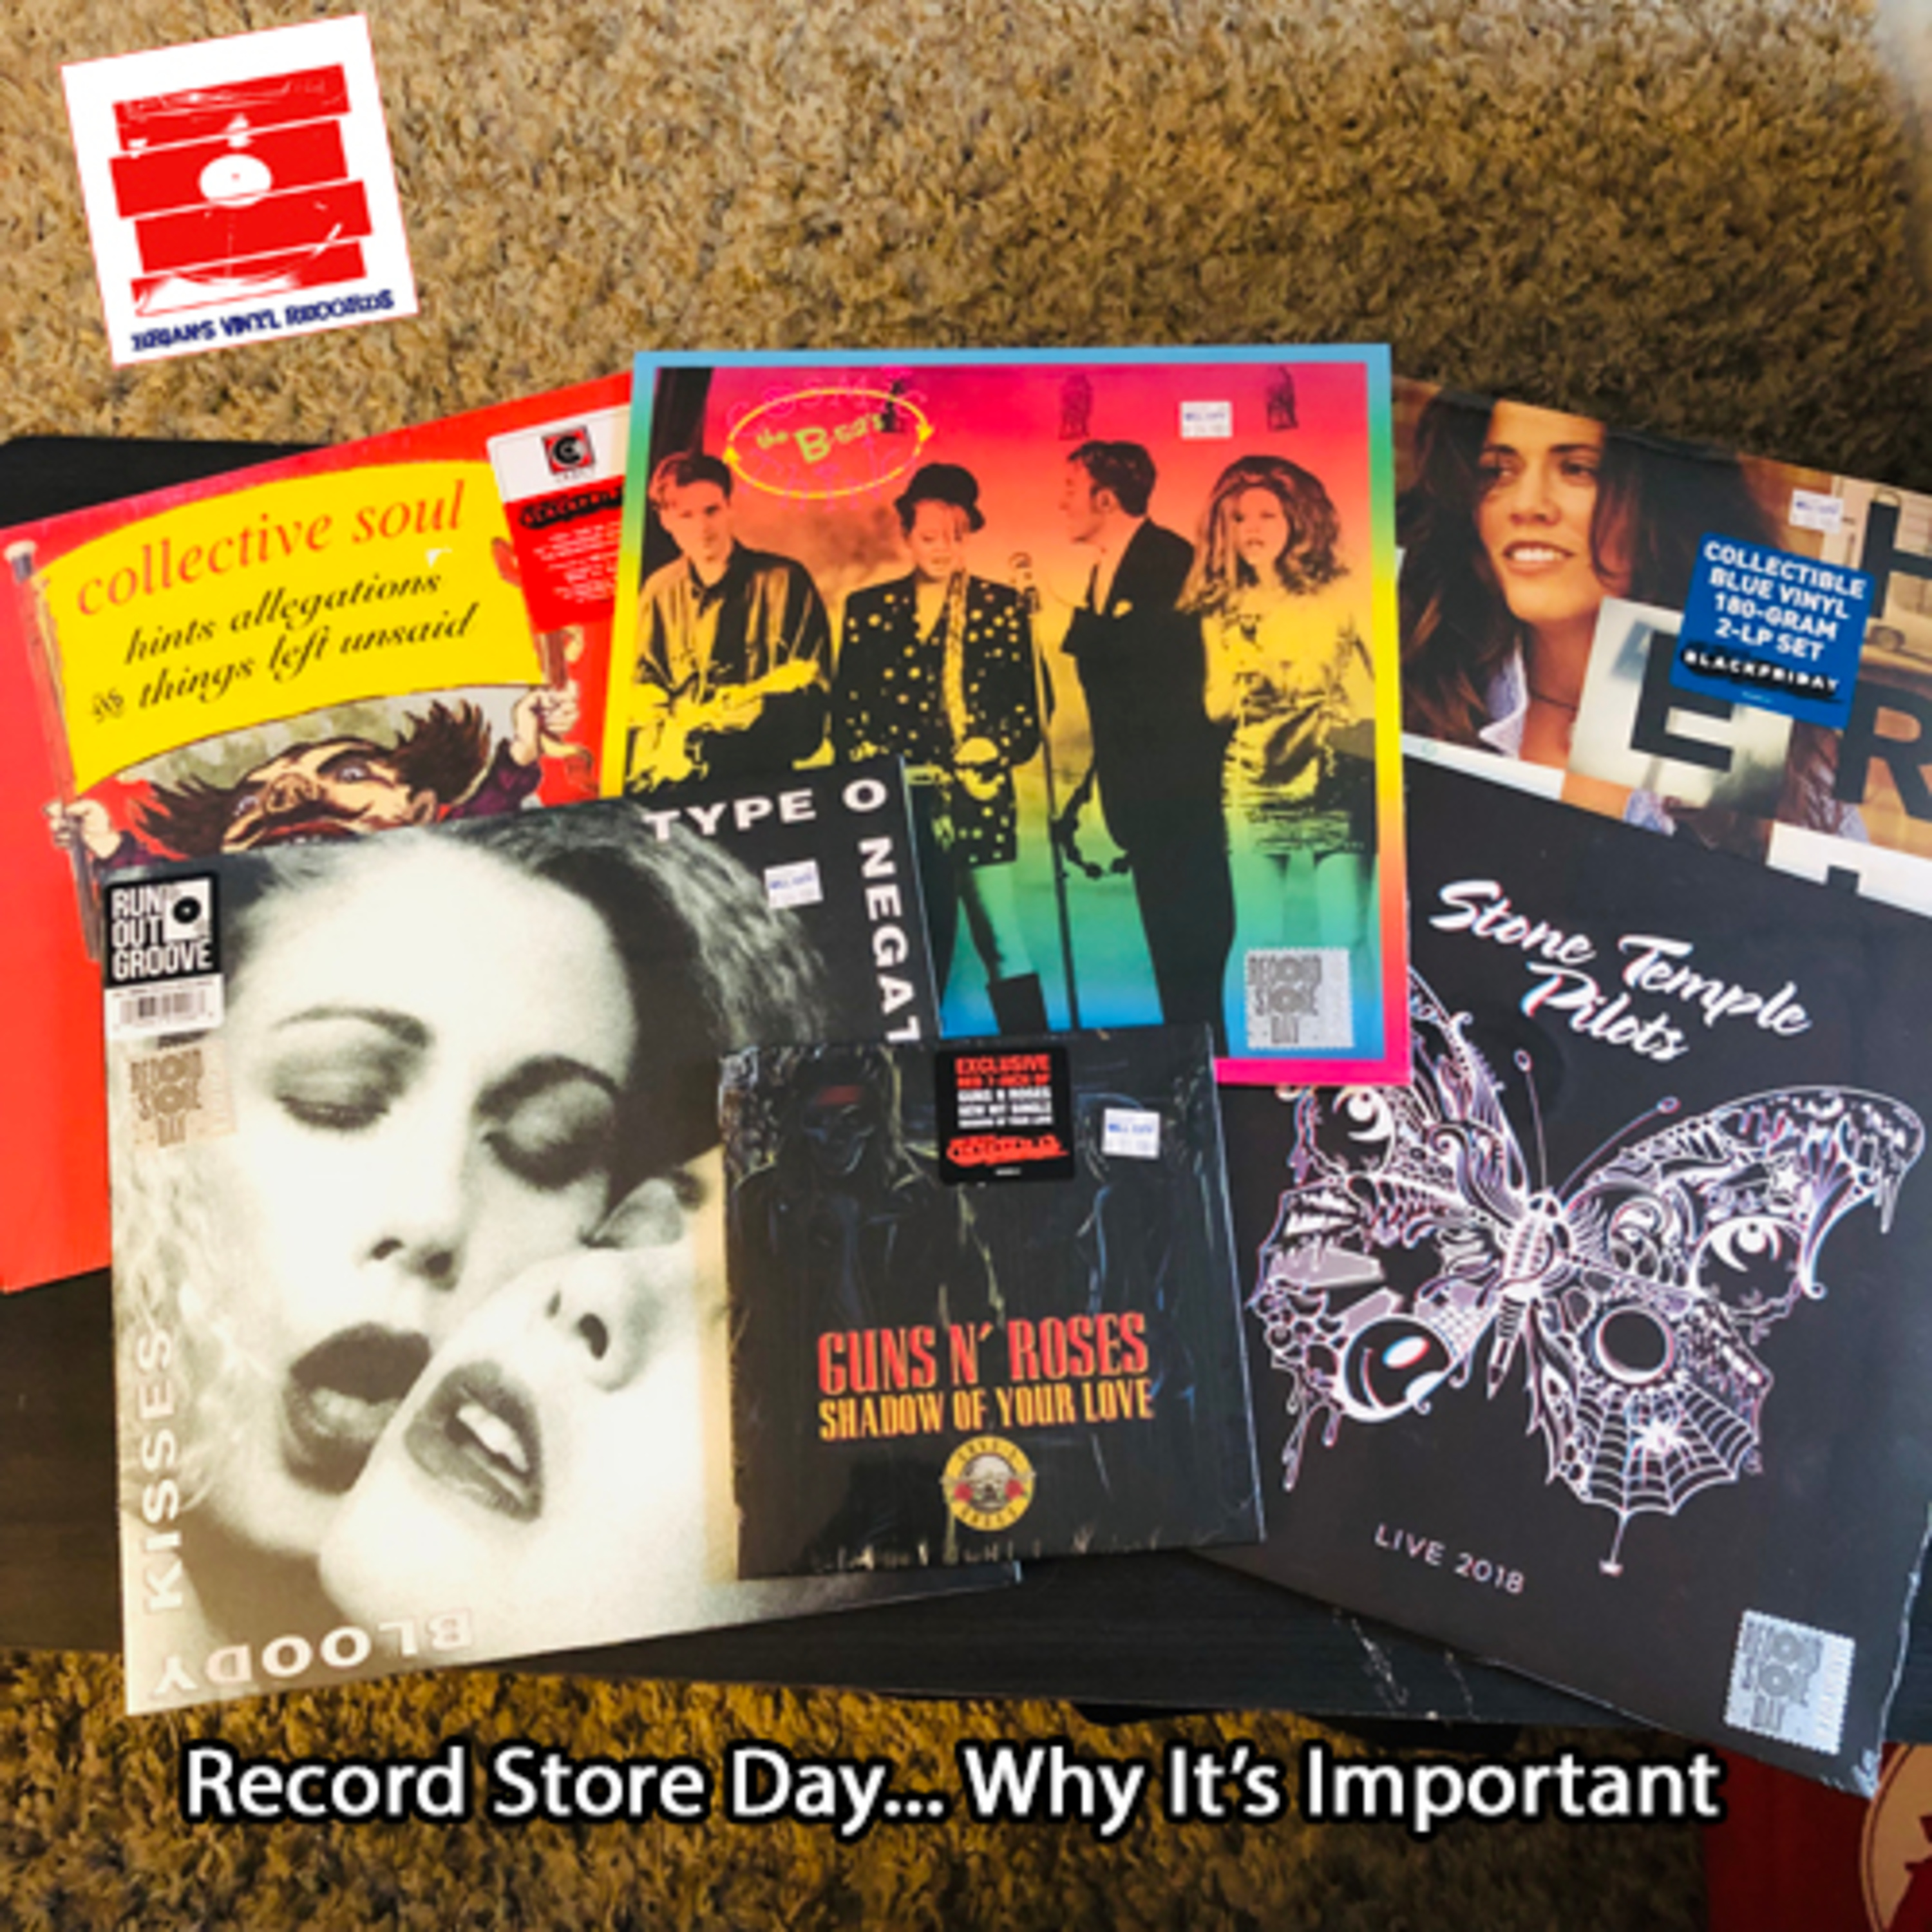 Record Store Day... Why It's Important